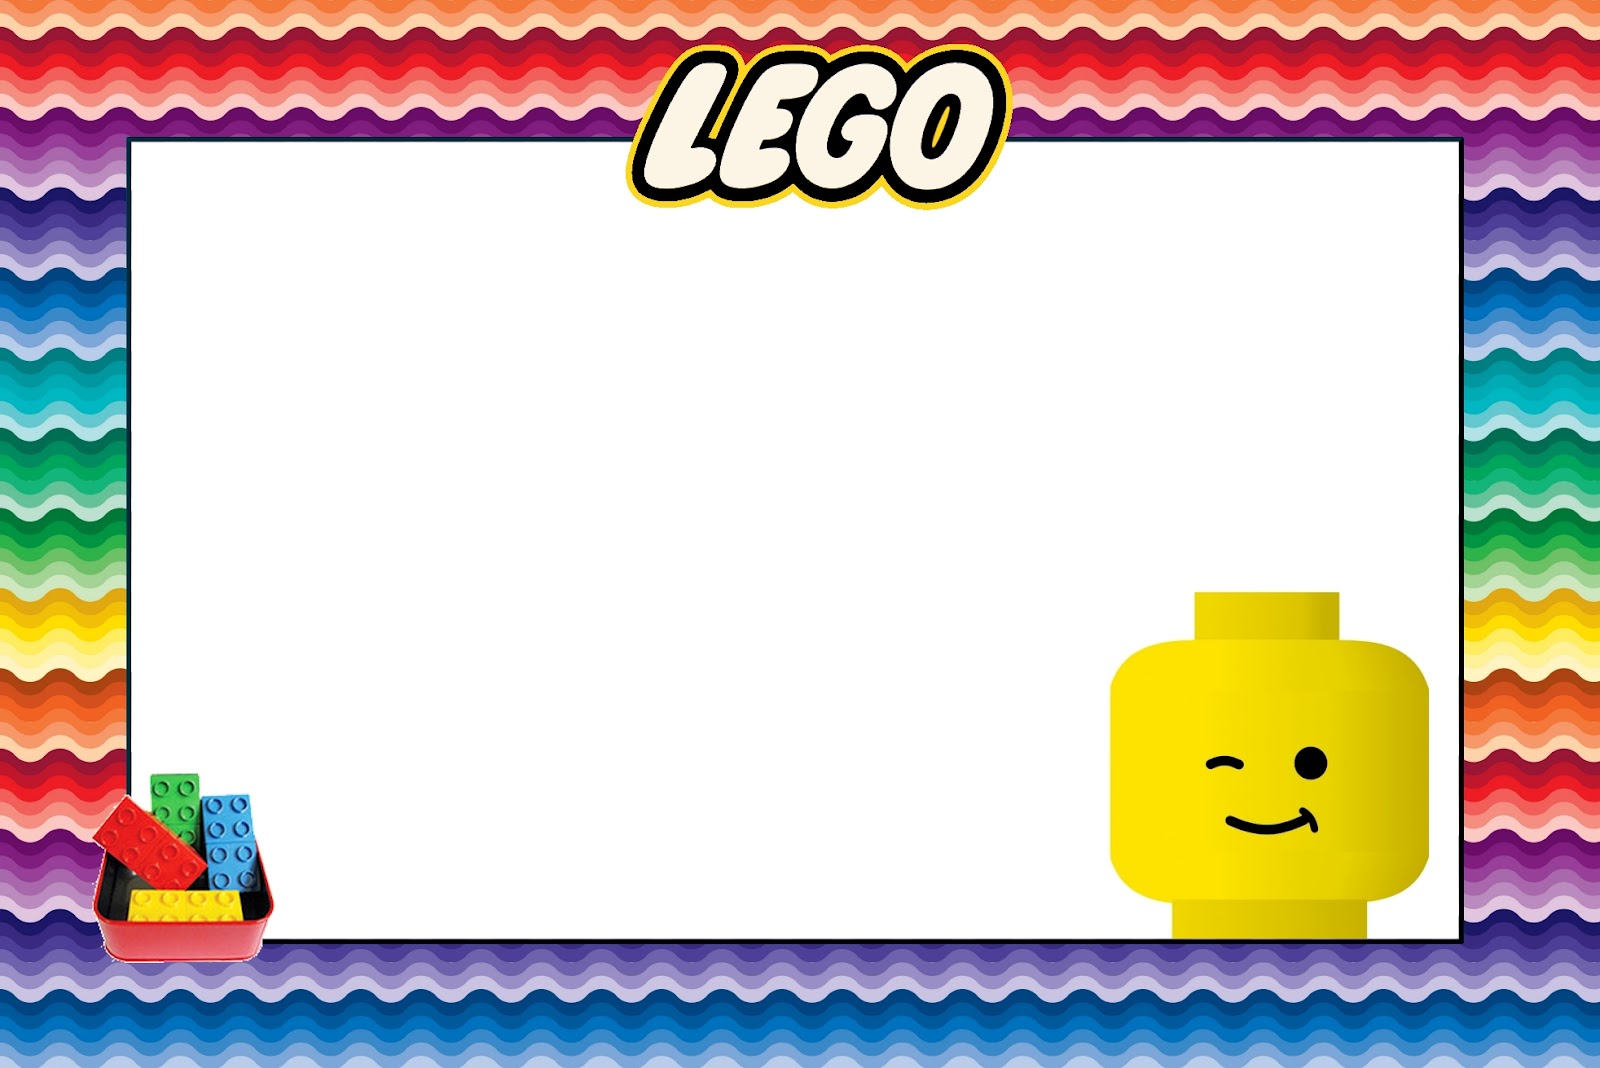 Lego Free Printable Invitations. | Oh My Fiesta! in english